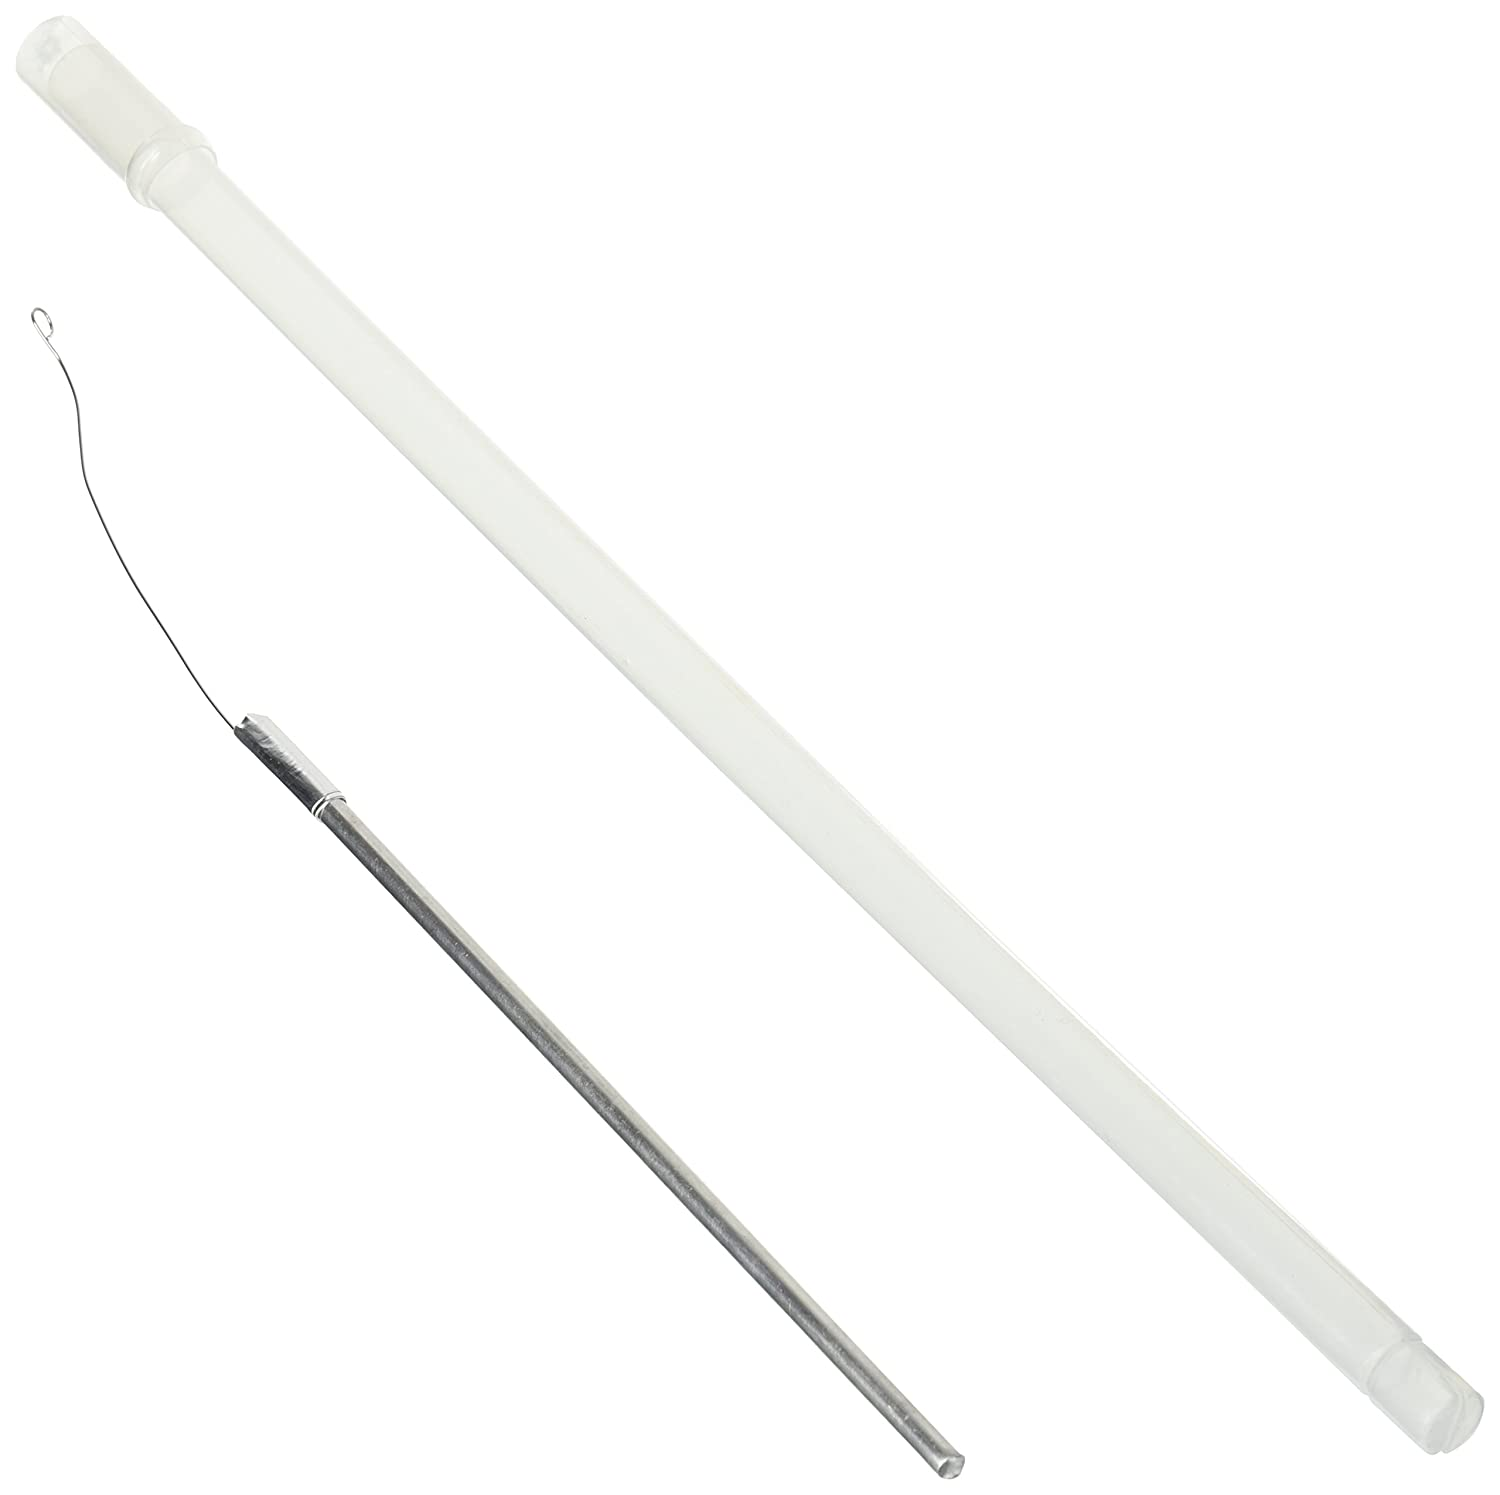 GSC International 4-23512 Inoculating Needle with Looped Nichrome